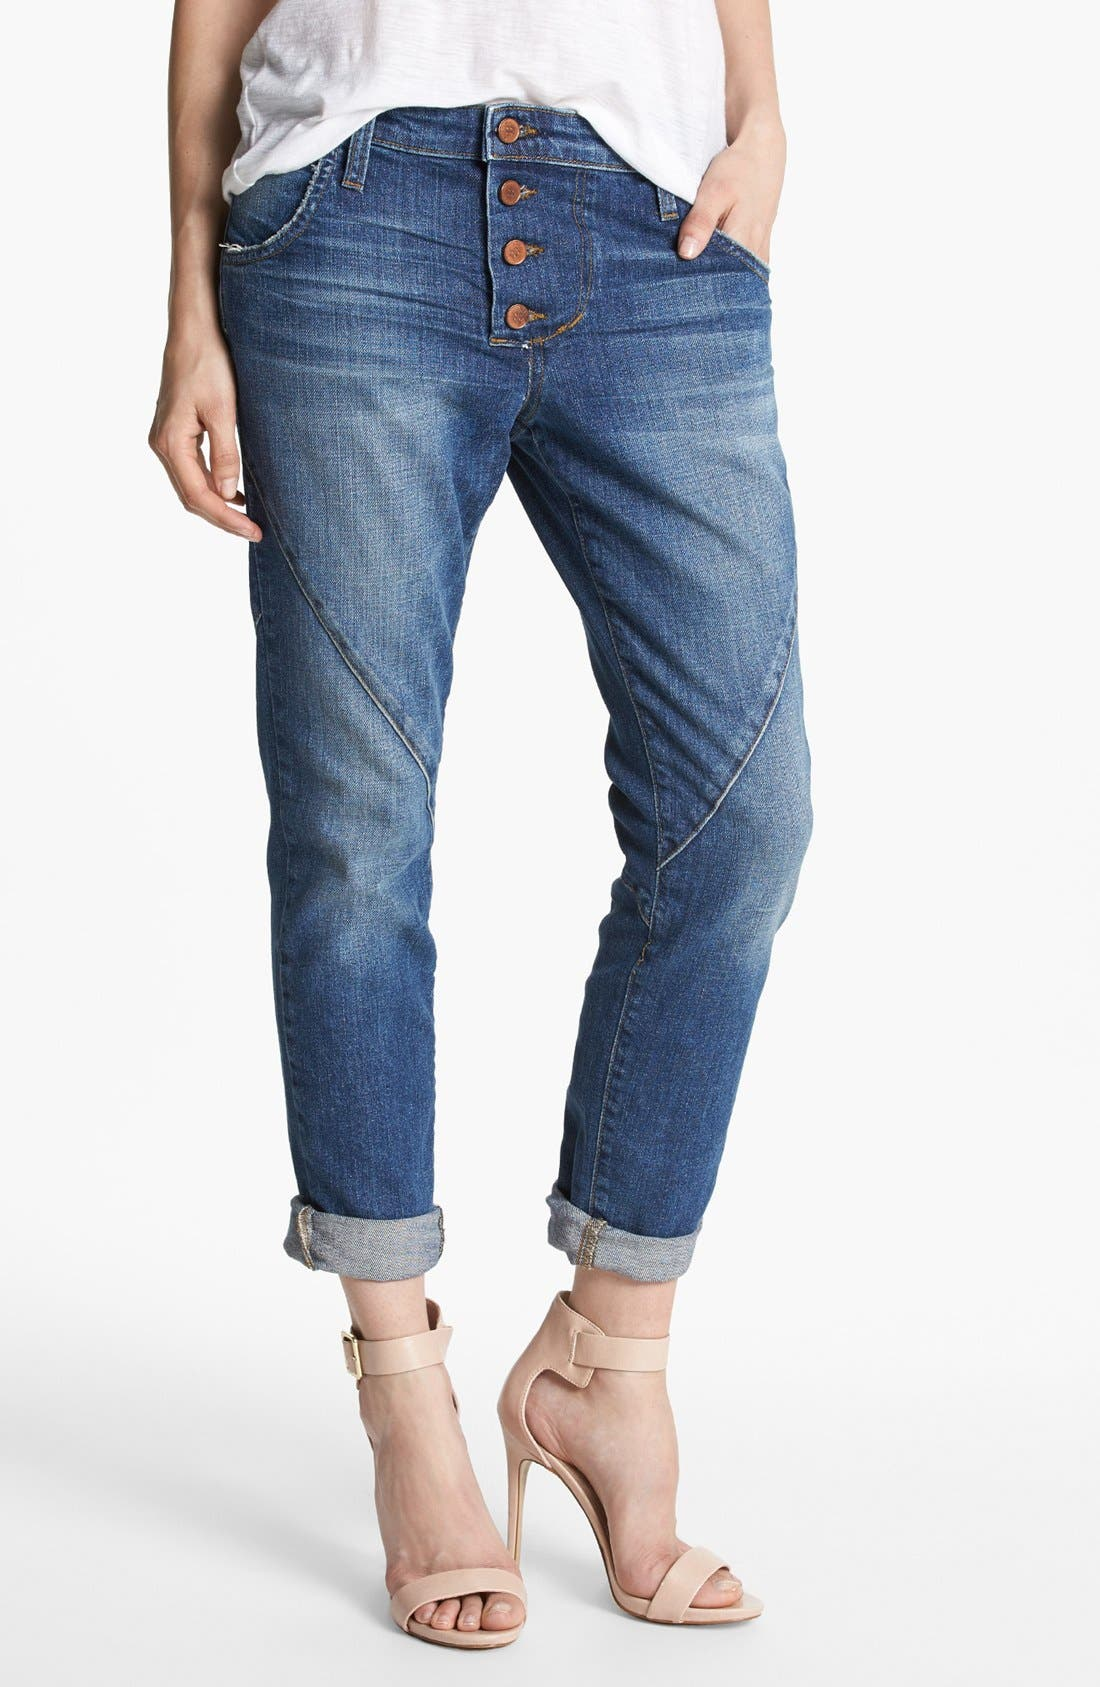 Alternate Image 1 Selected - Joe's 'Button Up' Slouchy Ankle Jeans (Nyla)